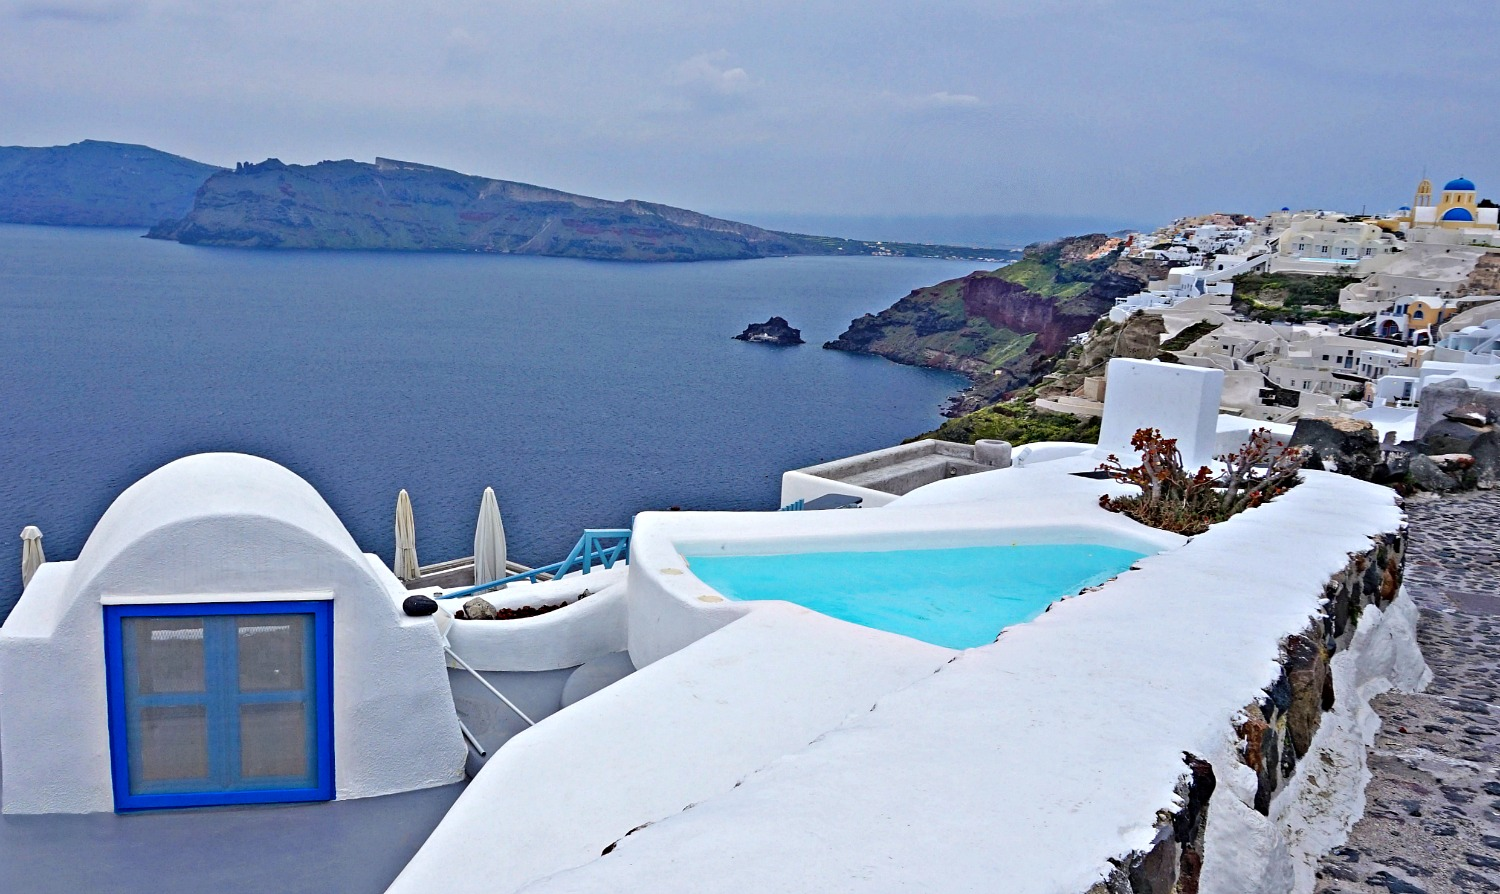 Nice pool near Oia Santorini, as seen from a hiking trail.